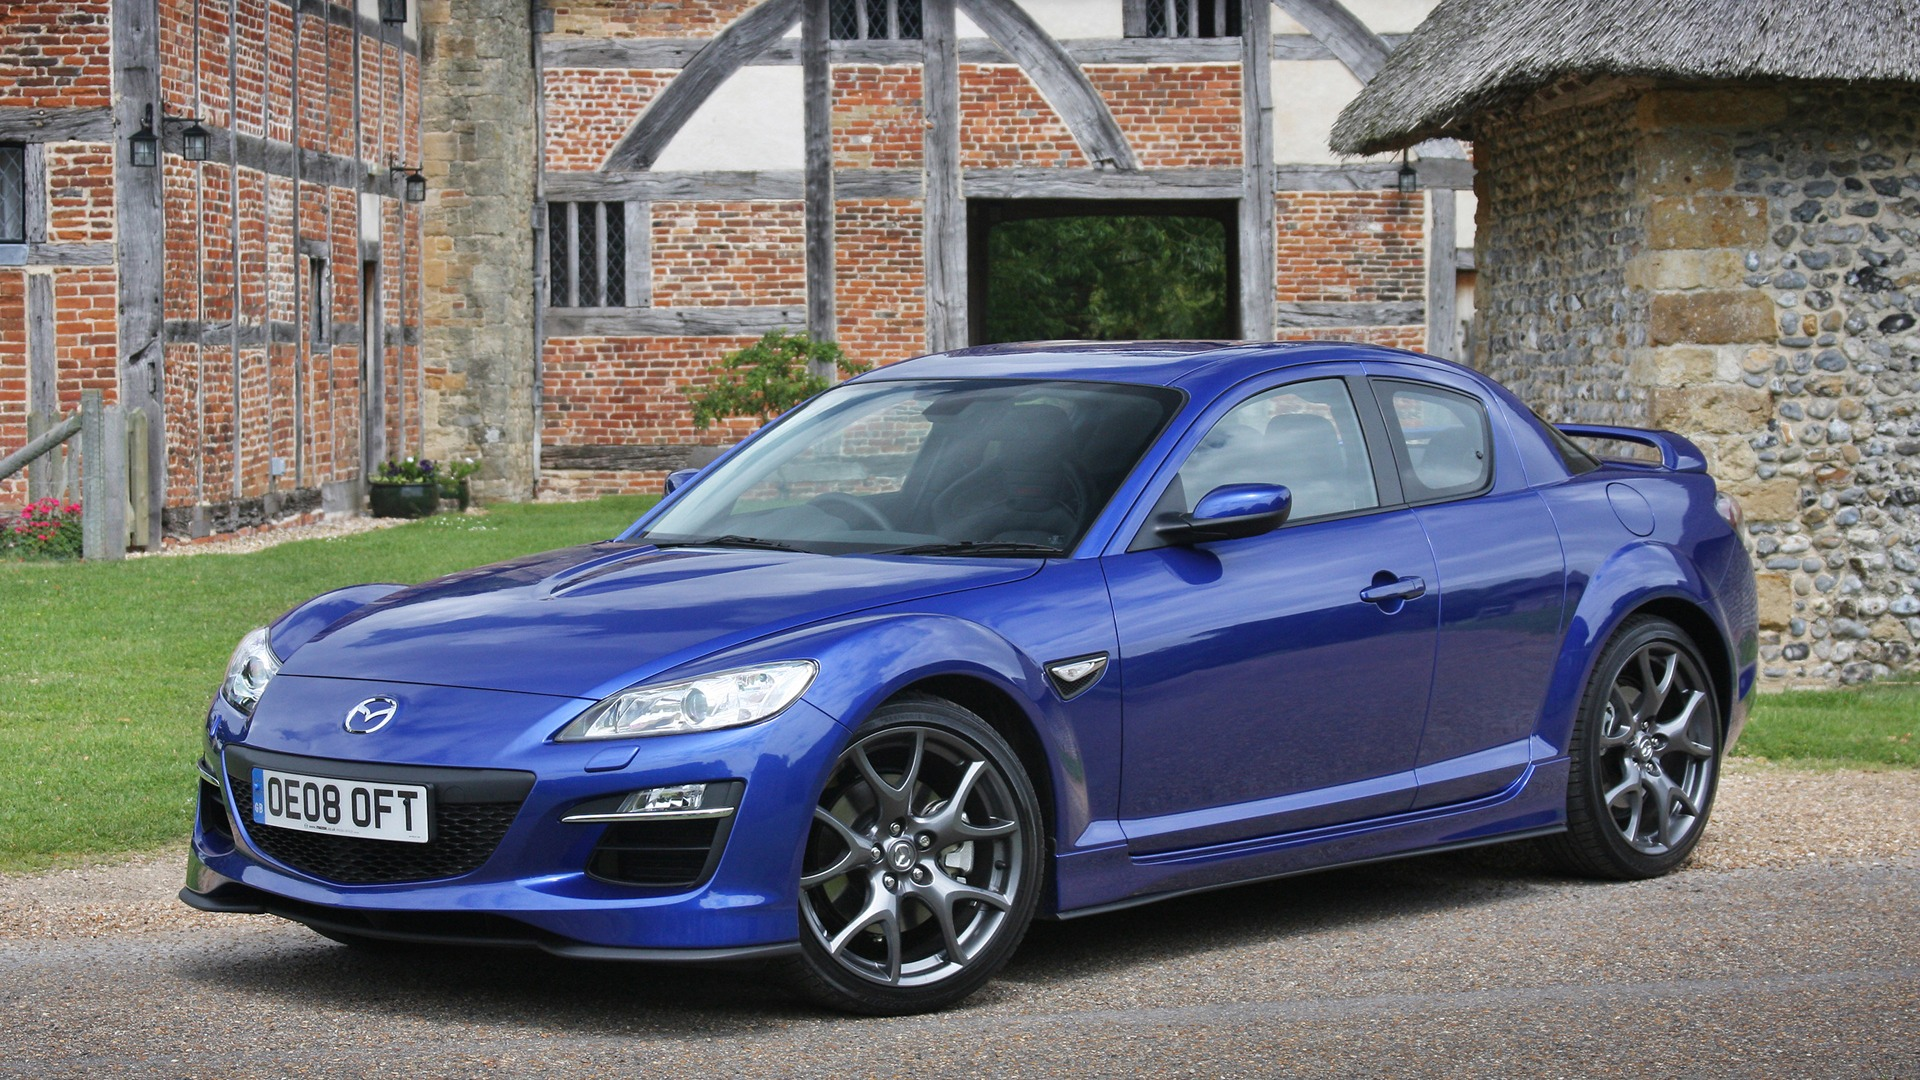 Mazda Rx 8 Uk Version 2008 Hd Wallpaper 9 1920x1080 Wallpaper Download Mazda Rx 8 Uk